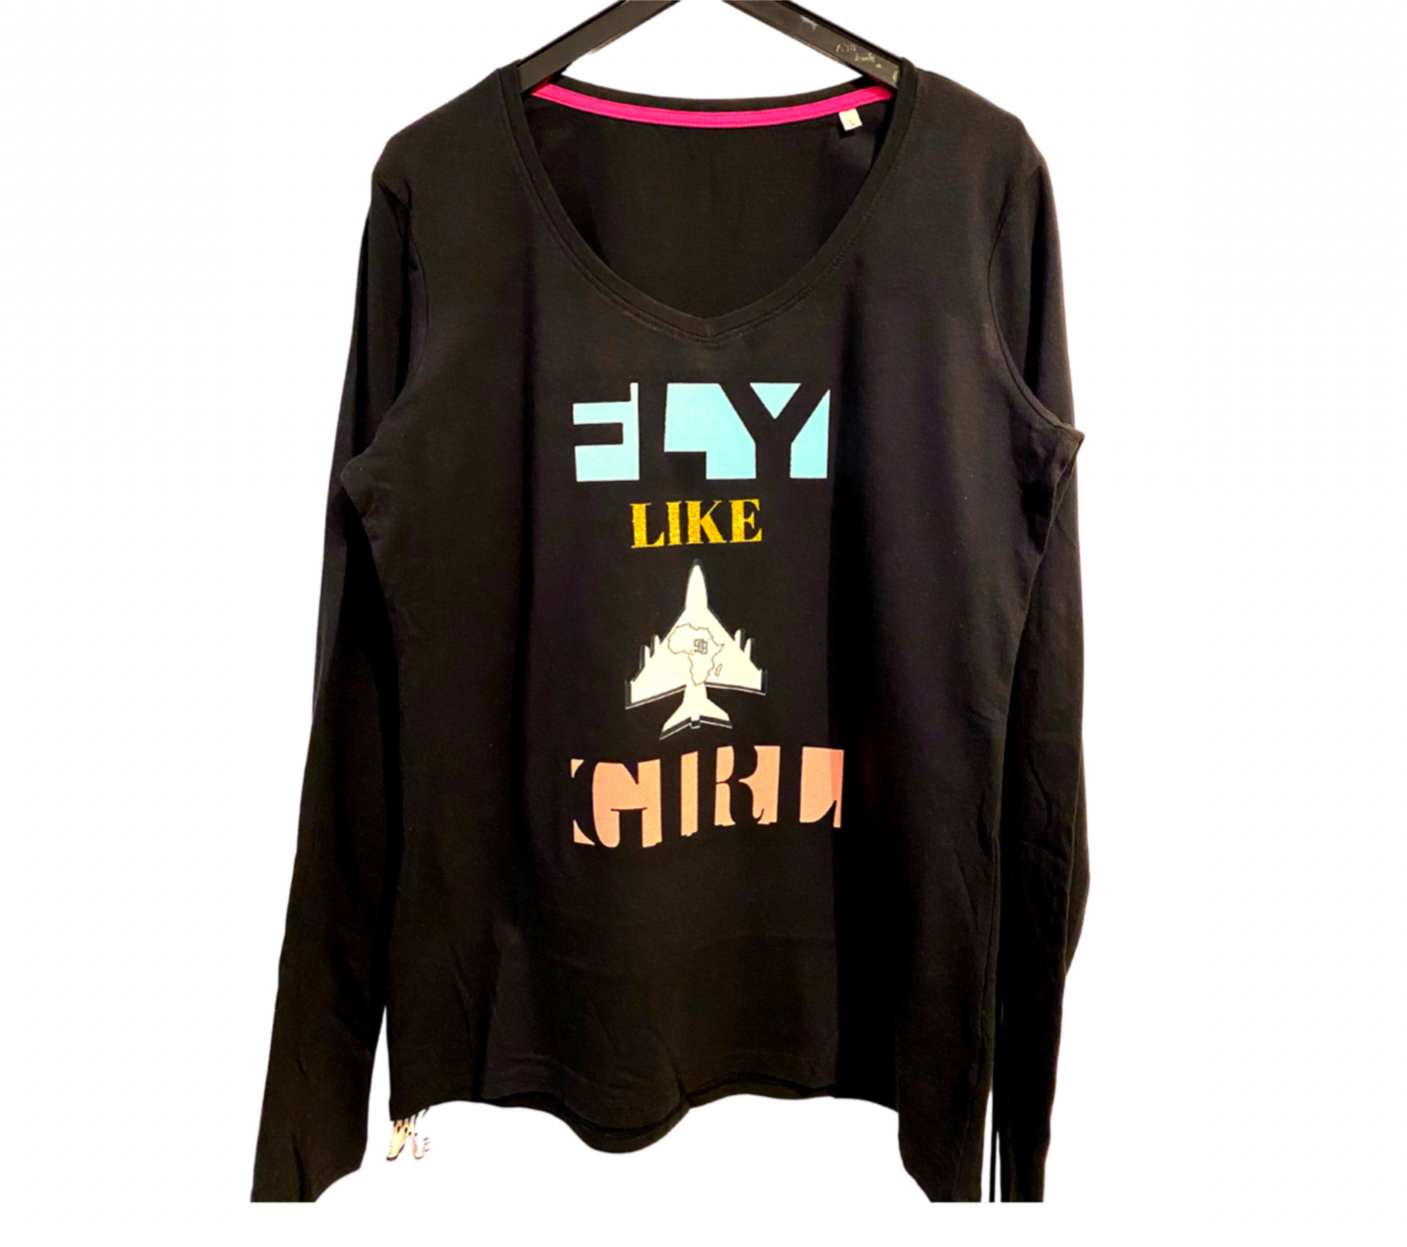 Fly like a girl print on shirt with Ninety-nines logo